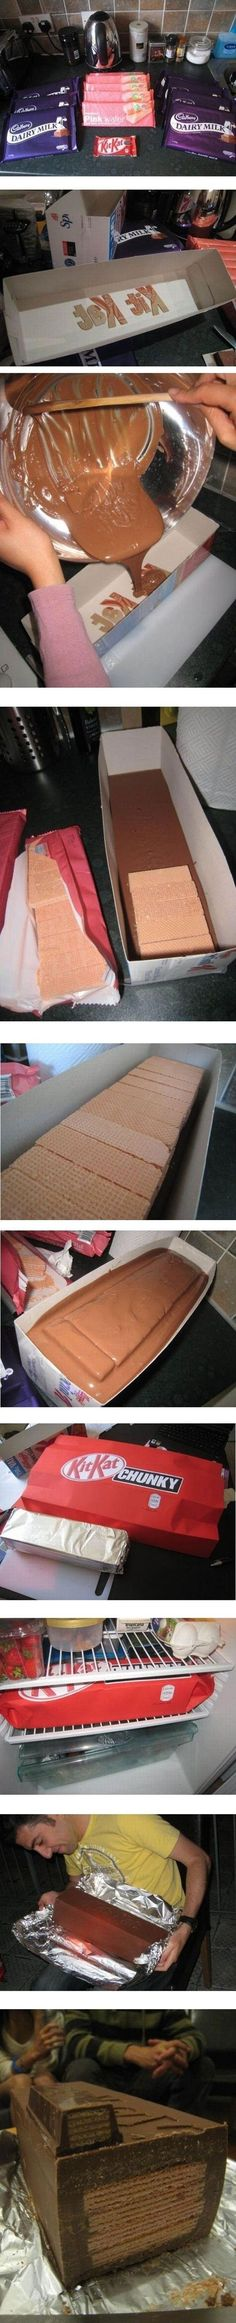 How to make a Giant KitKat Bar....